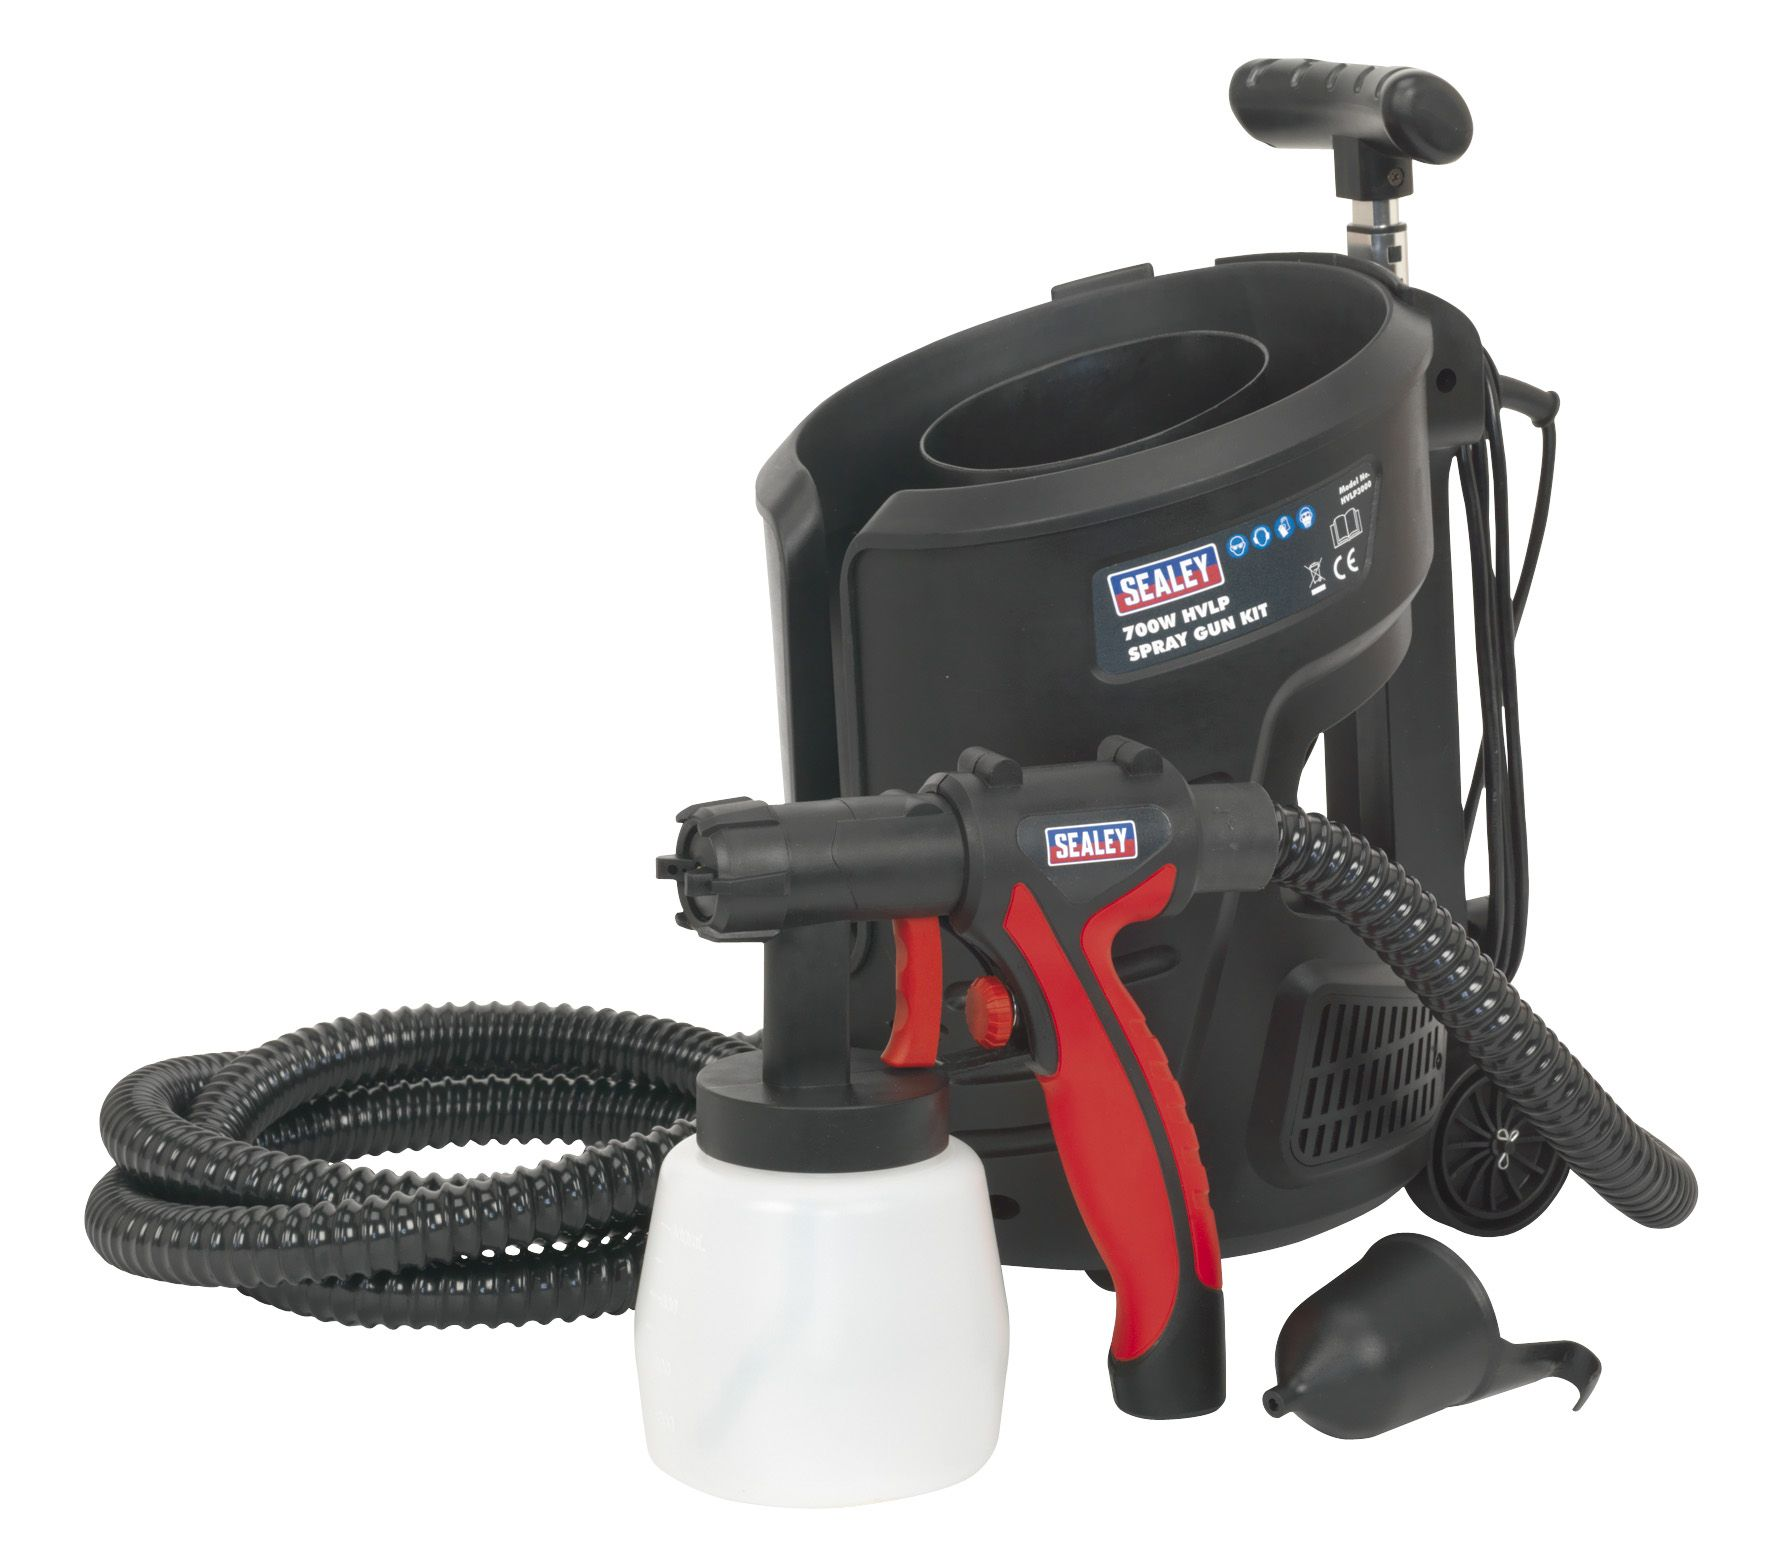 Sealey HVLP Spray Gun Kit 700W/230V